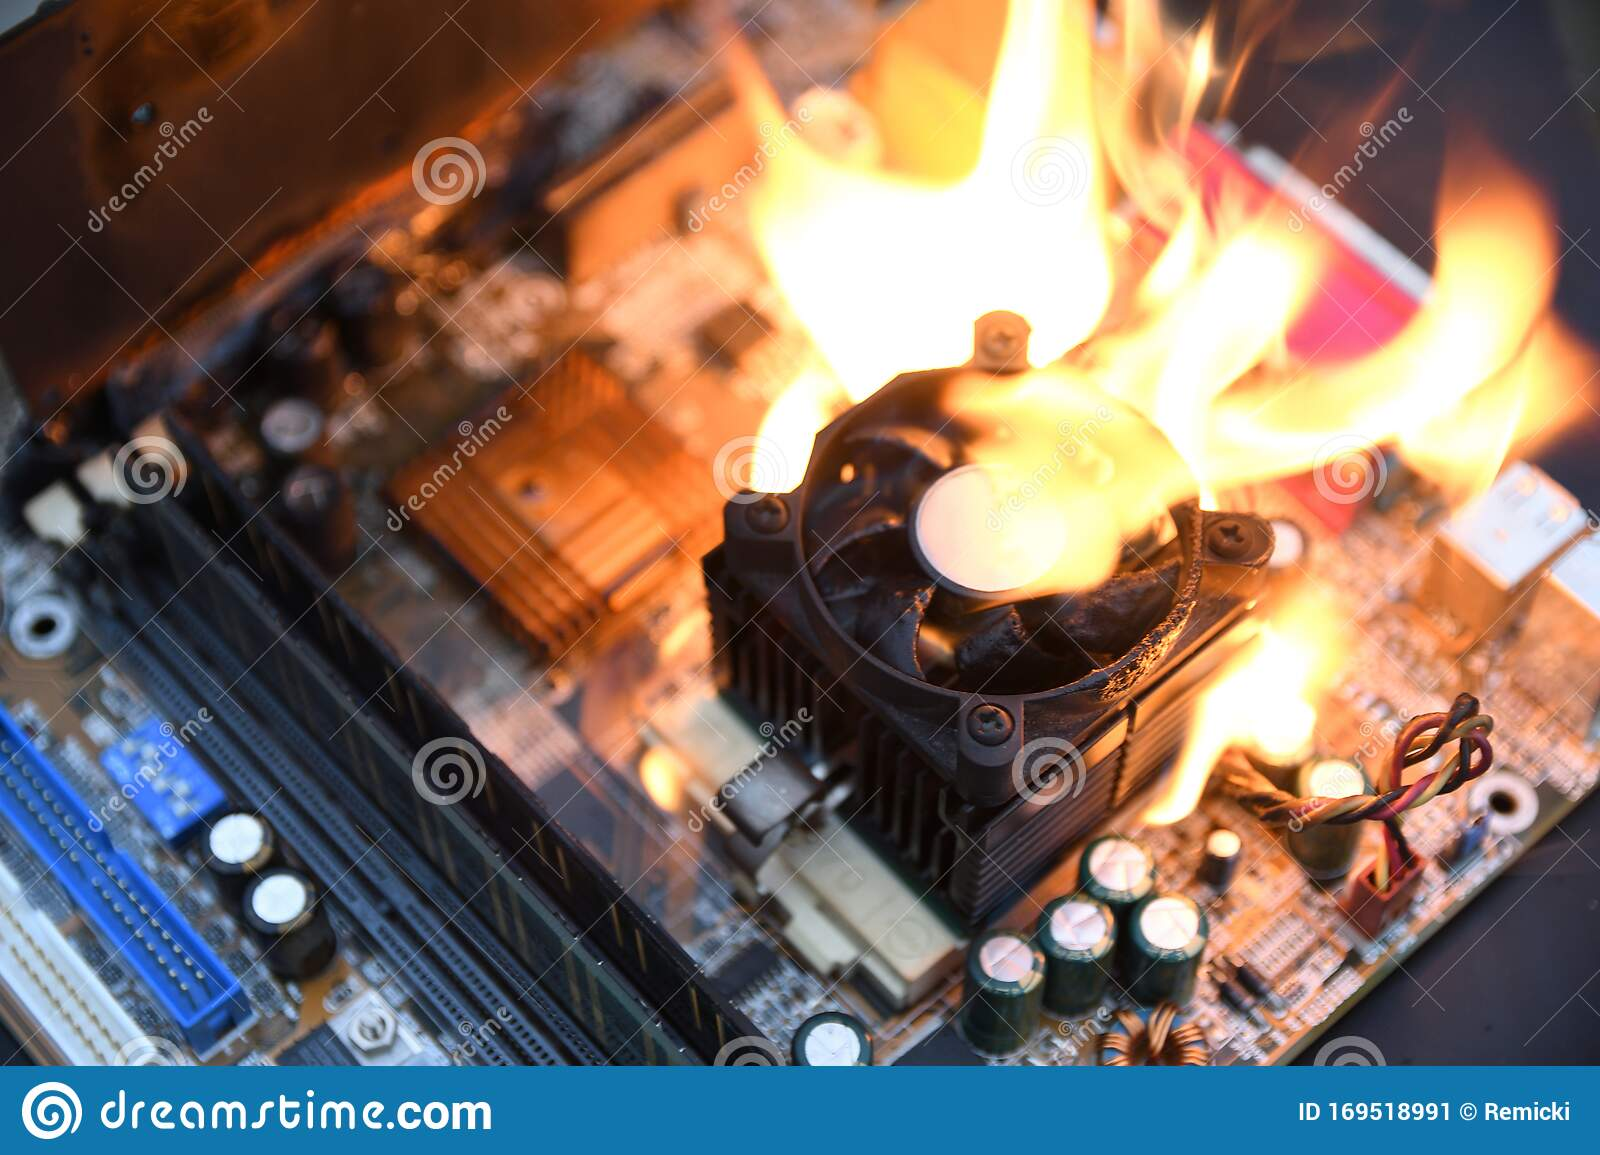 Fire Burning Blazing Computer Motherboard Cpu Gpu And Video Card Processor On Circuit Board With Electronic Stock Image Image Of Broken Engineering 169518991